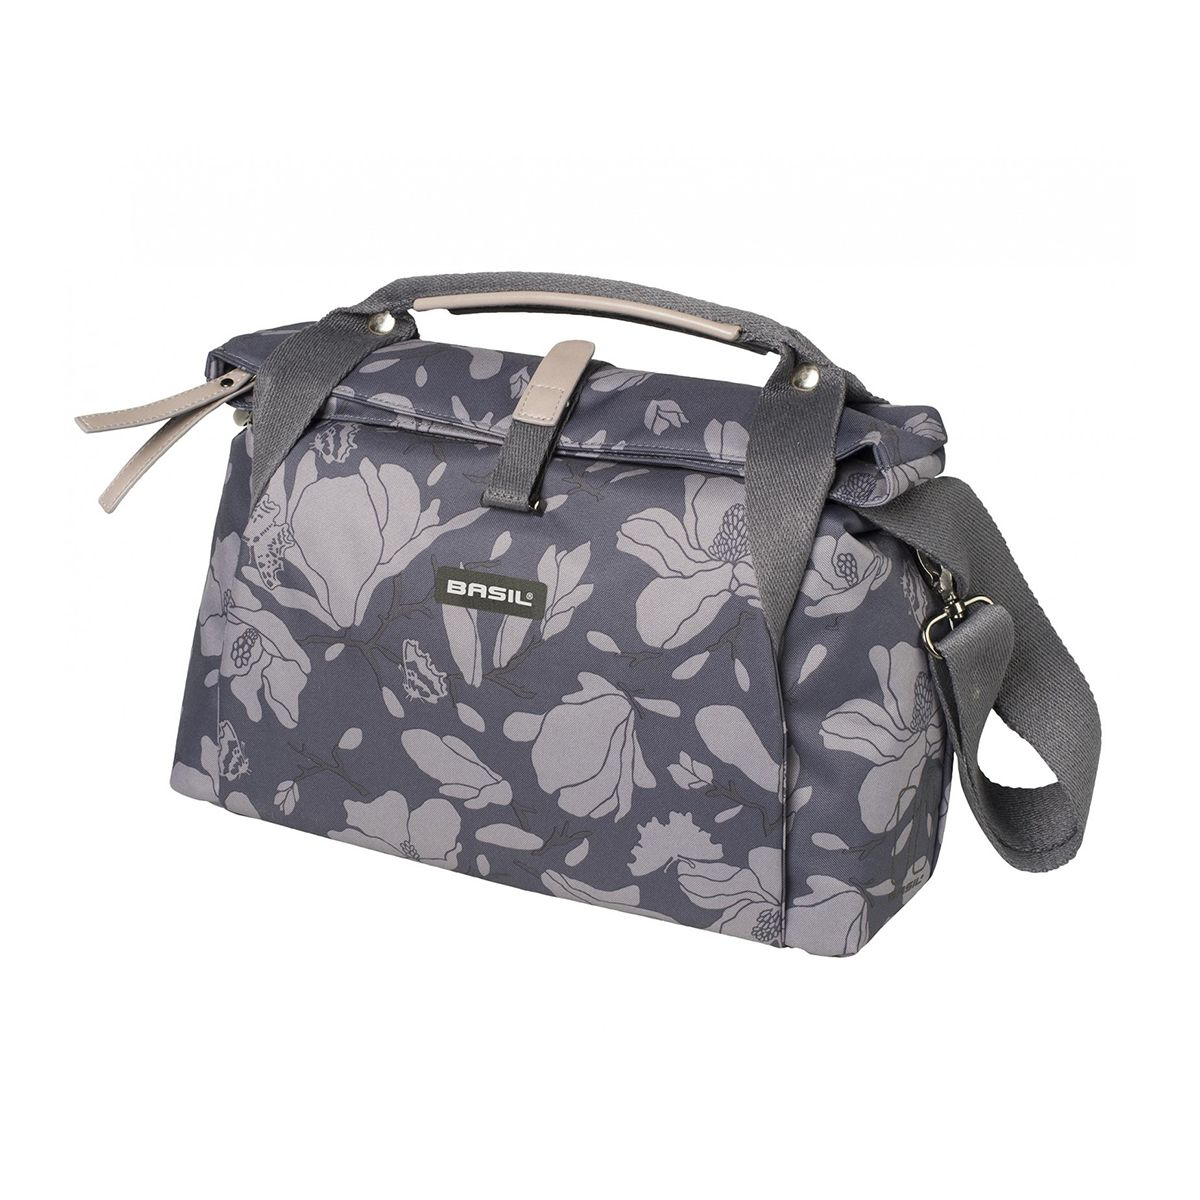 MAGNOLIA CITY BAG Lenkertasche